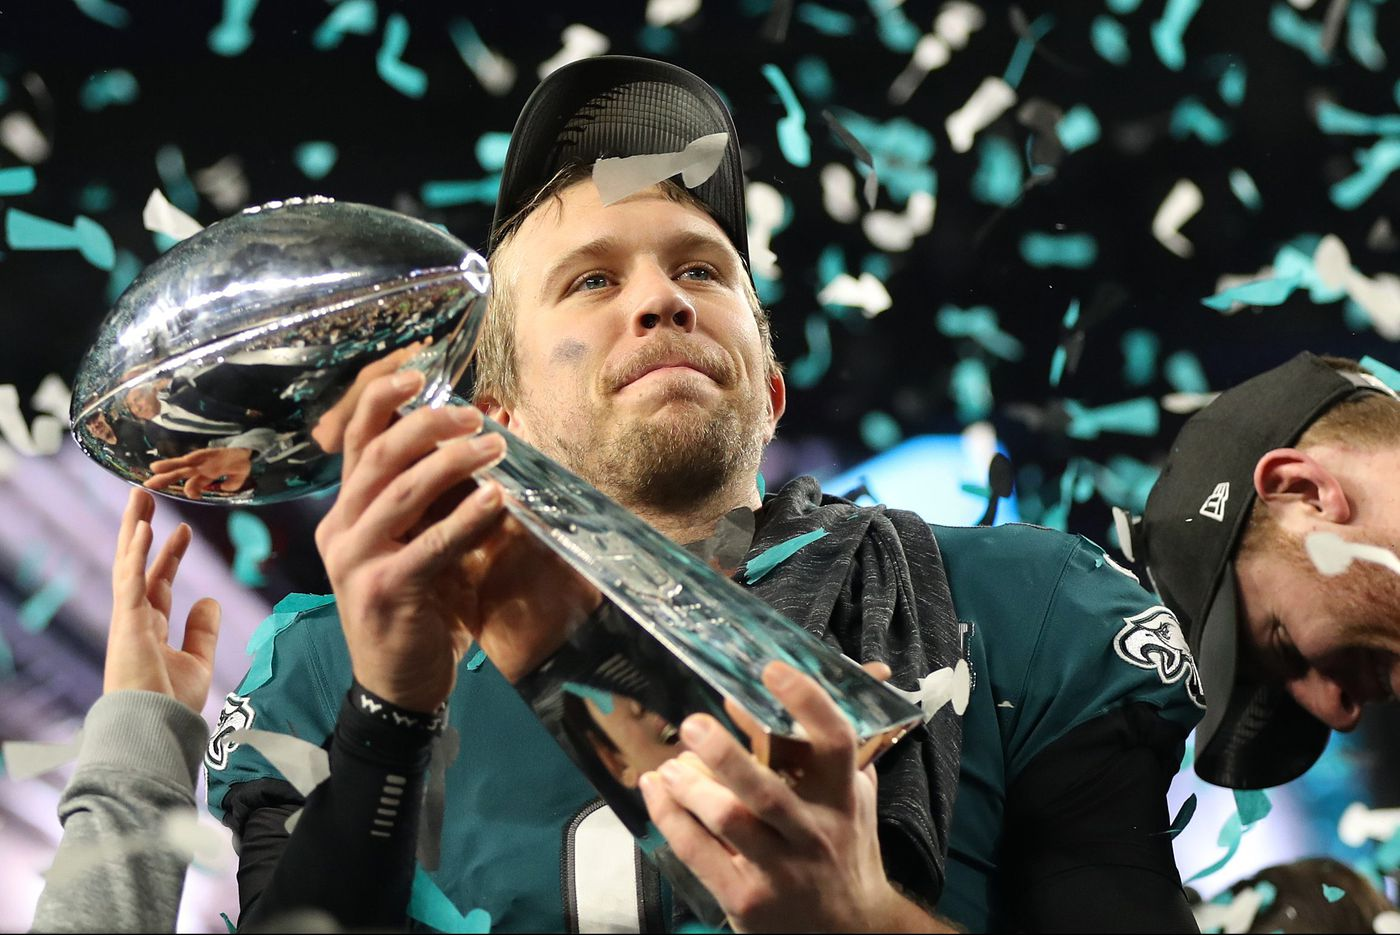 Betting on Eagles repeating as Super Bowl Champs? Harrah's and Bally's offer best odds in Atlantic City